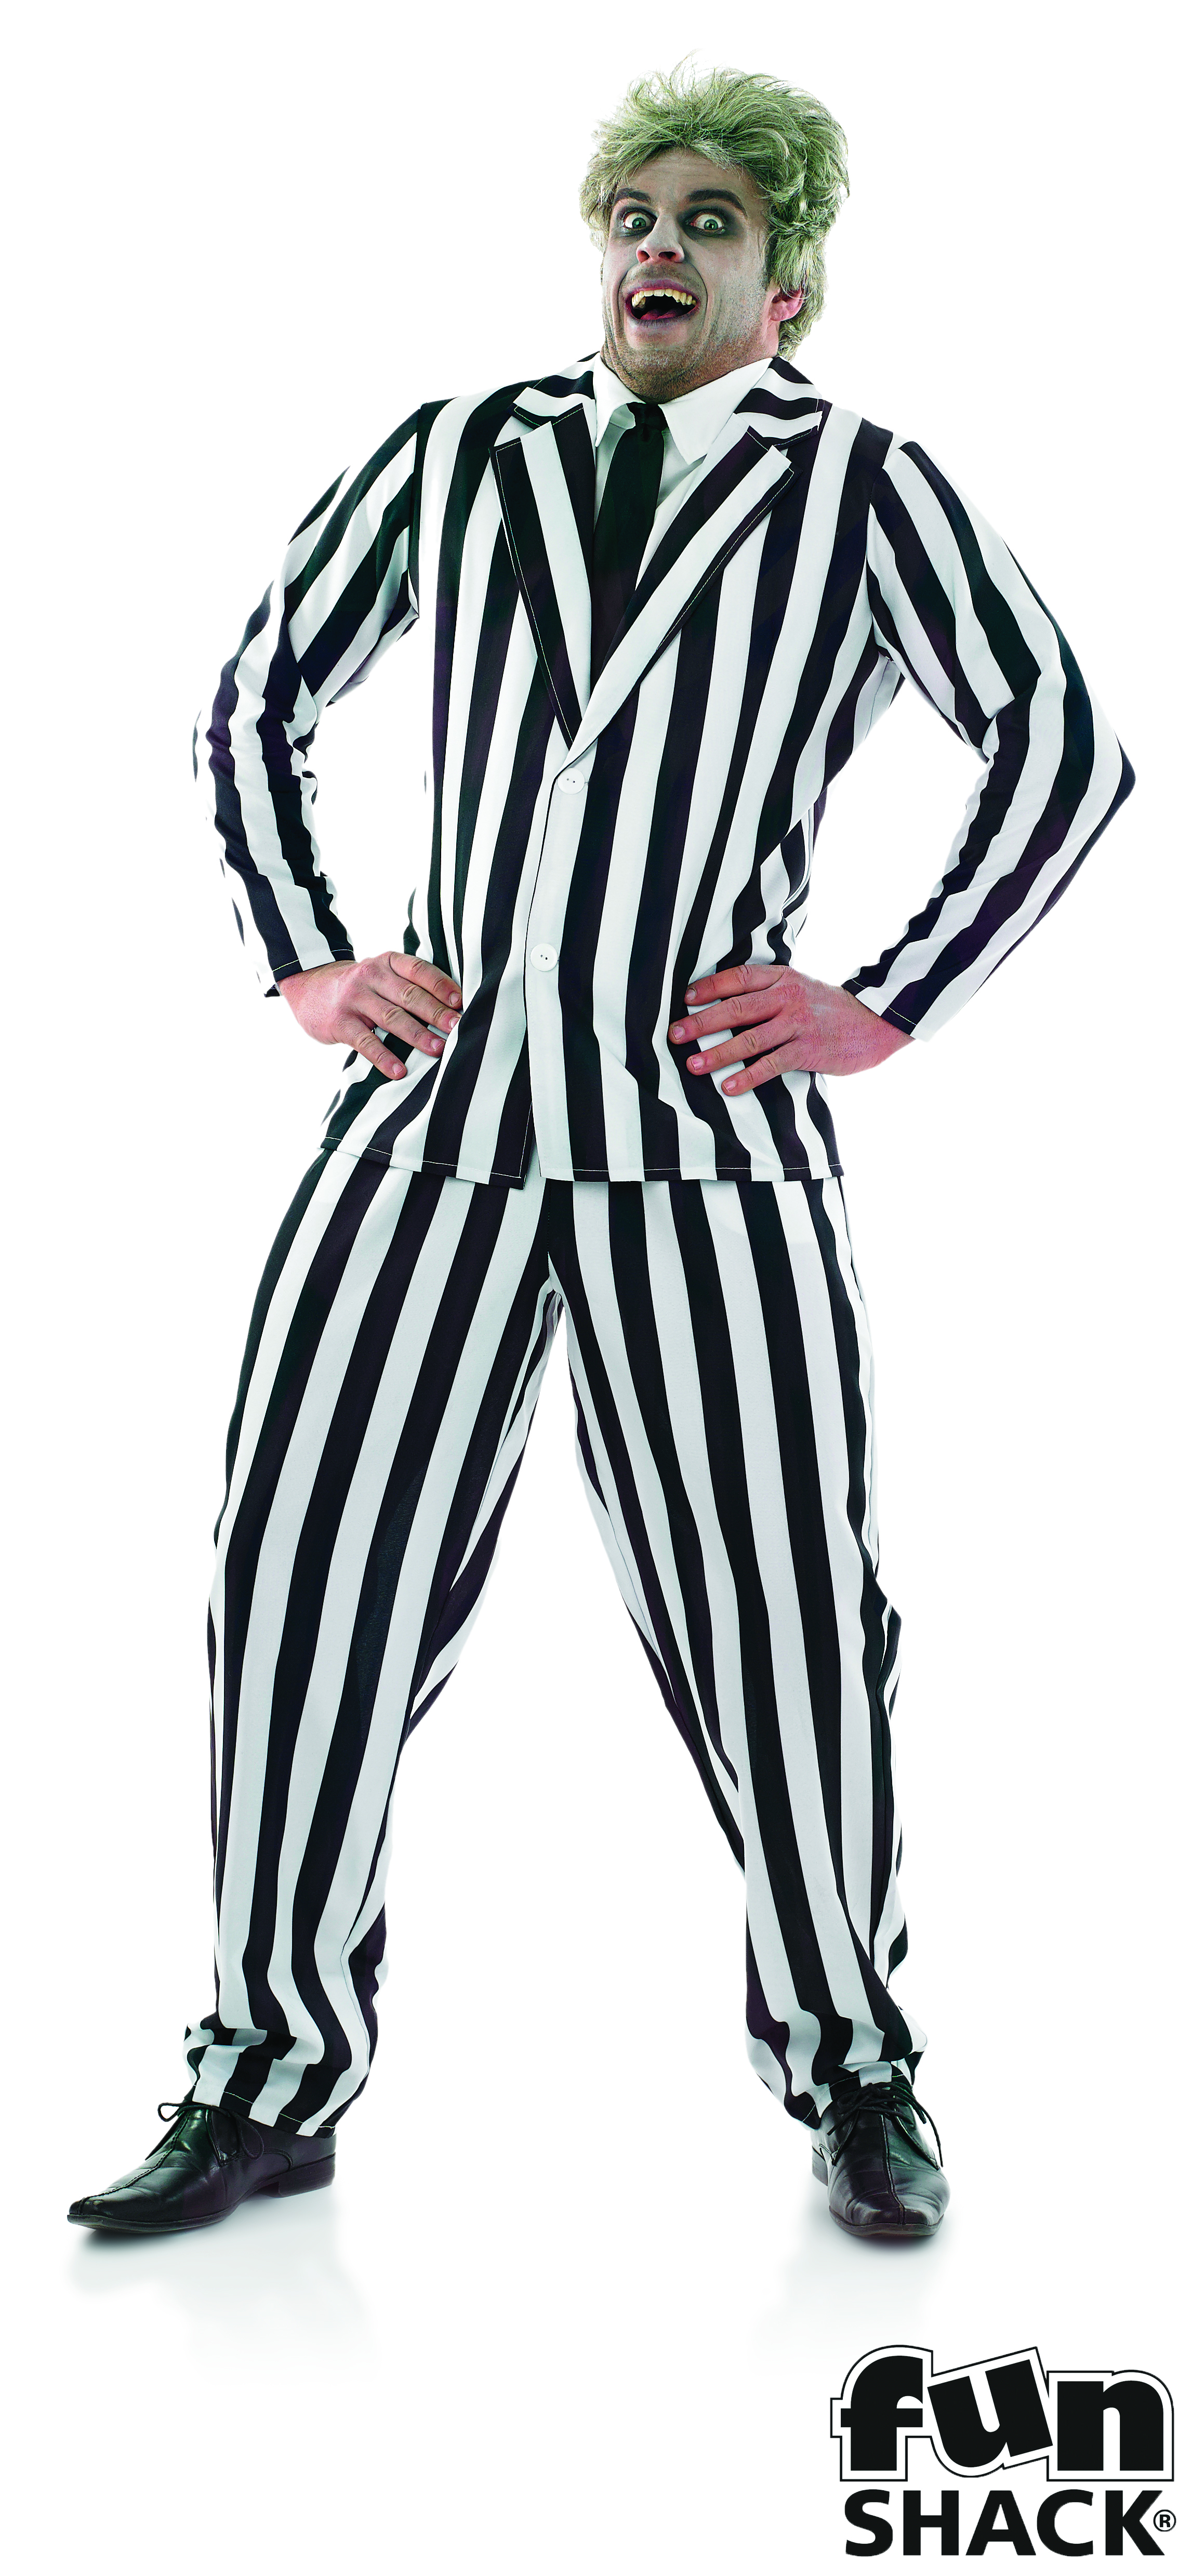 Black and white striped suit adult 3940 Fun shack